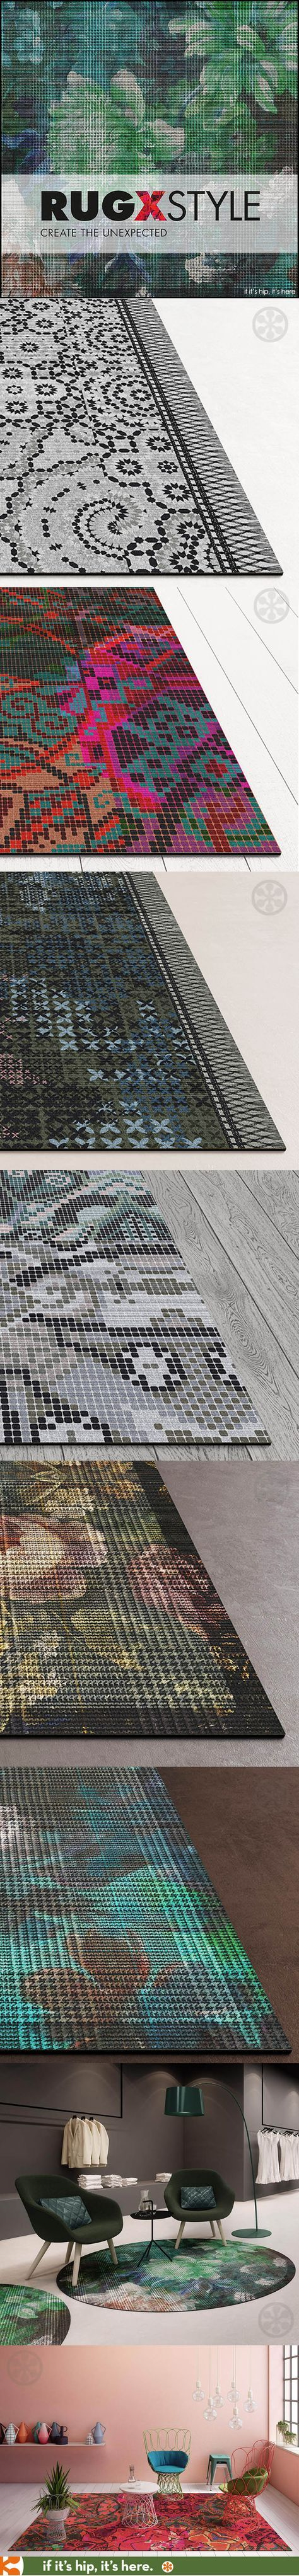 New round and rectangular durable, industrial area rugs for commercial or residential use with great style.